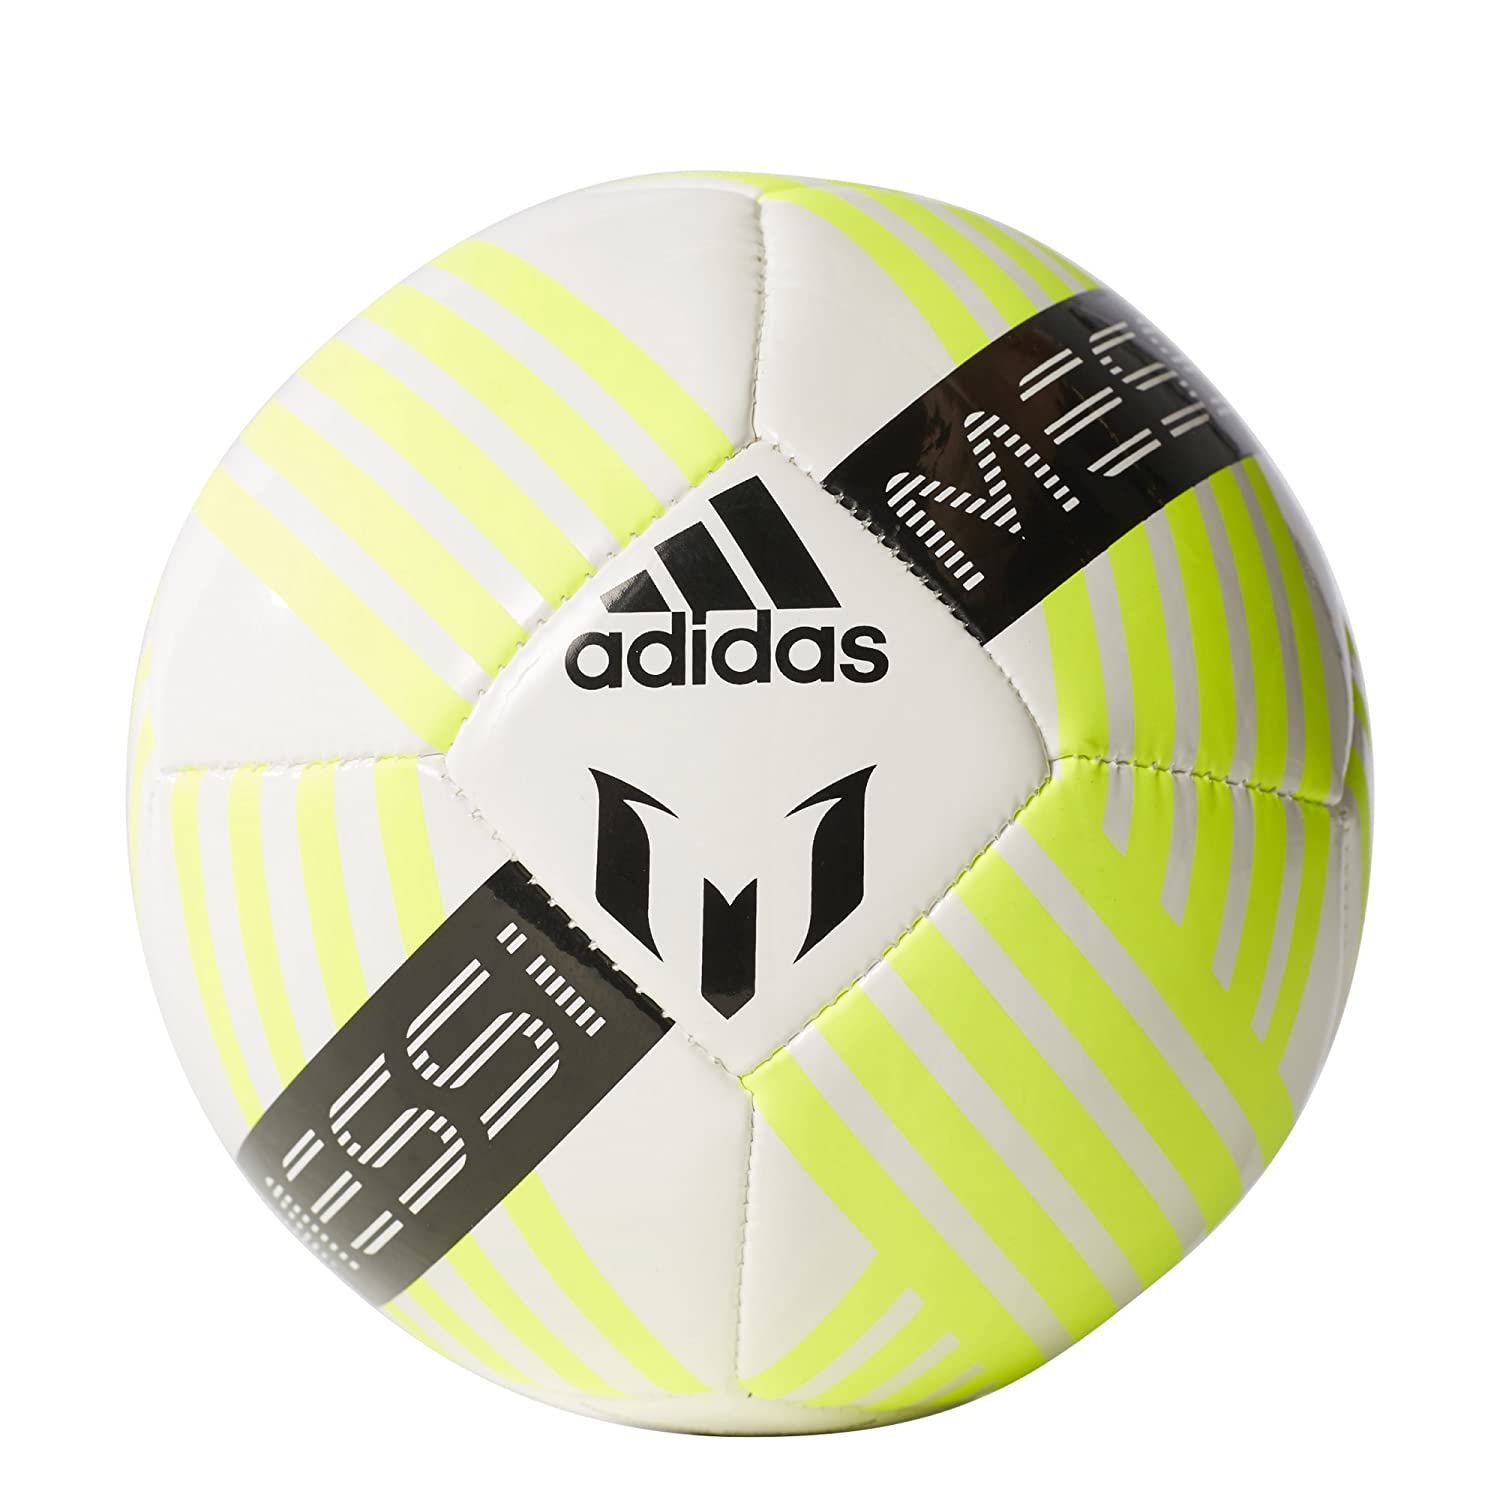 Adidas Messi Ball Amazon LbI8evhLH2